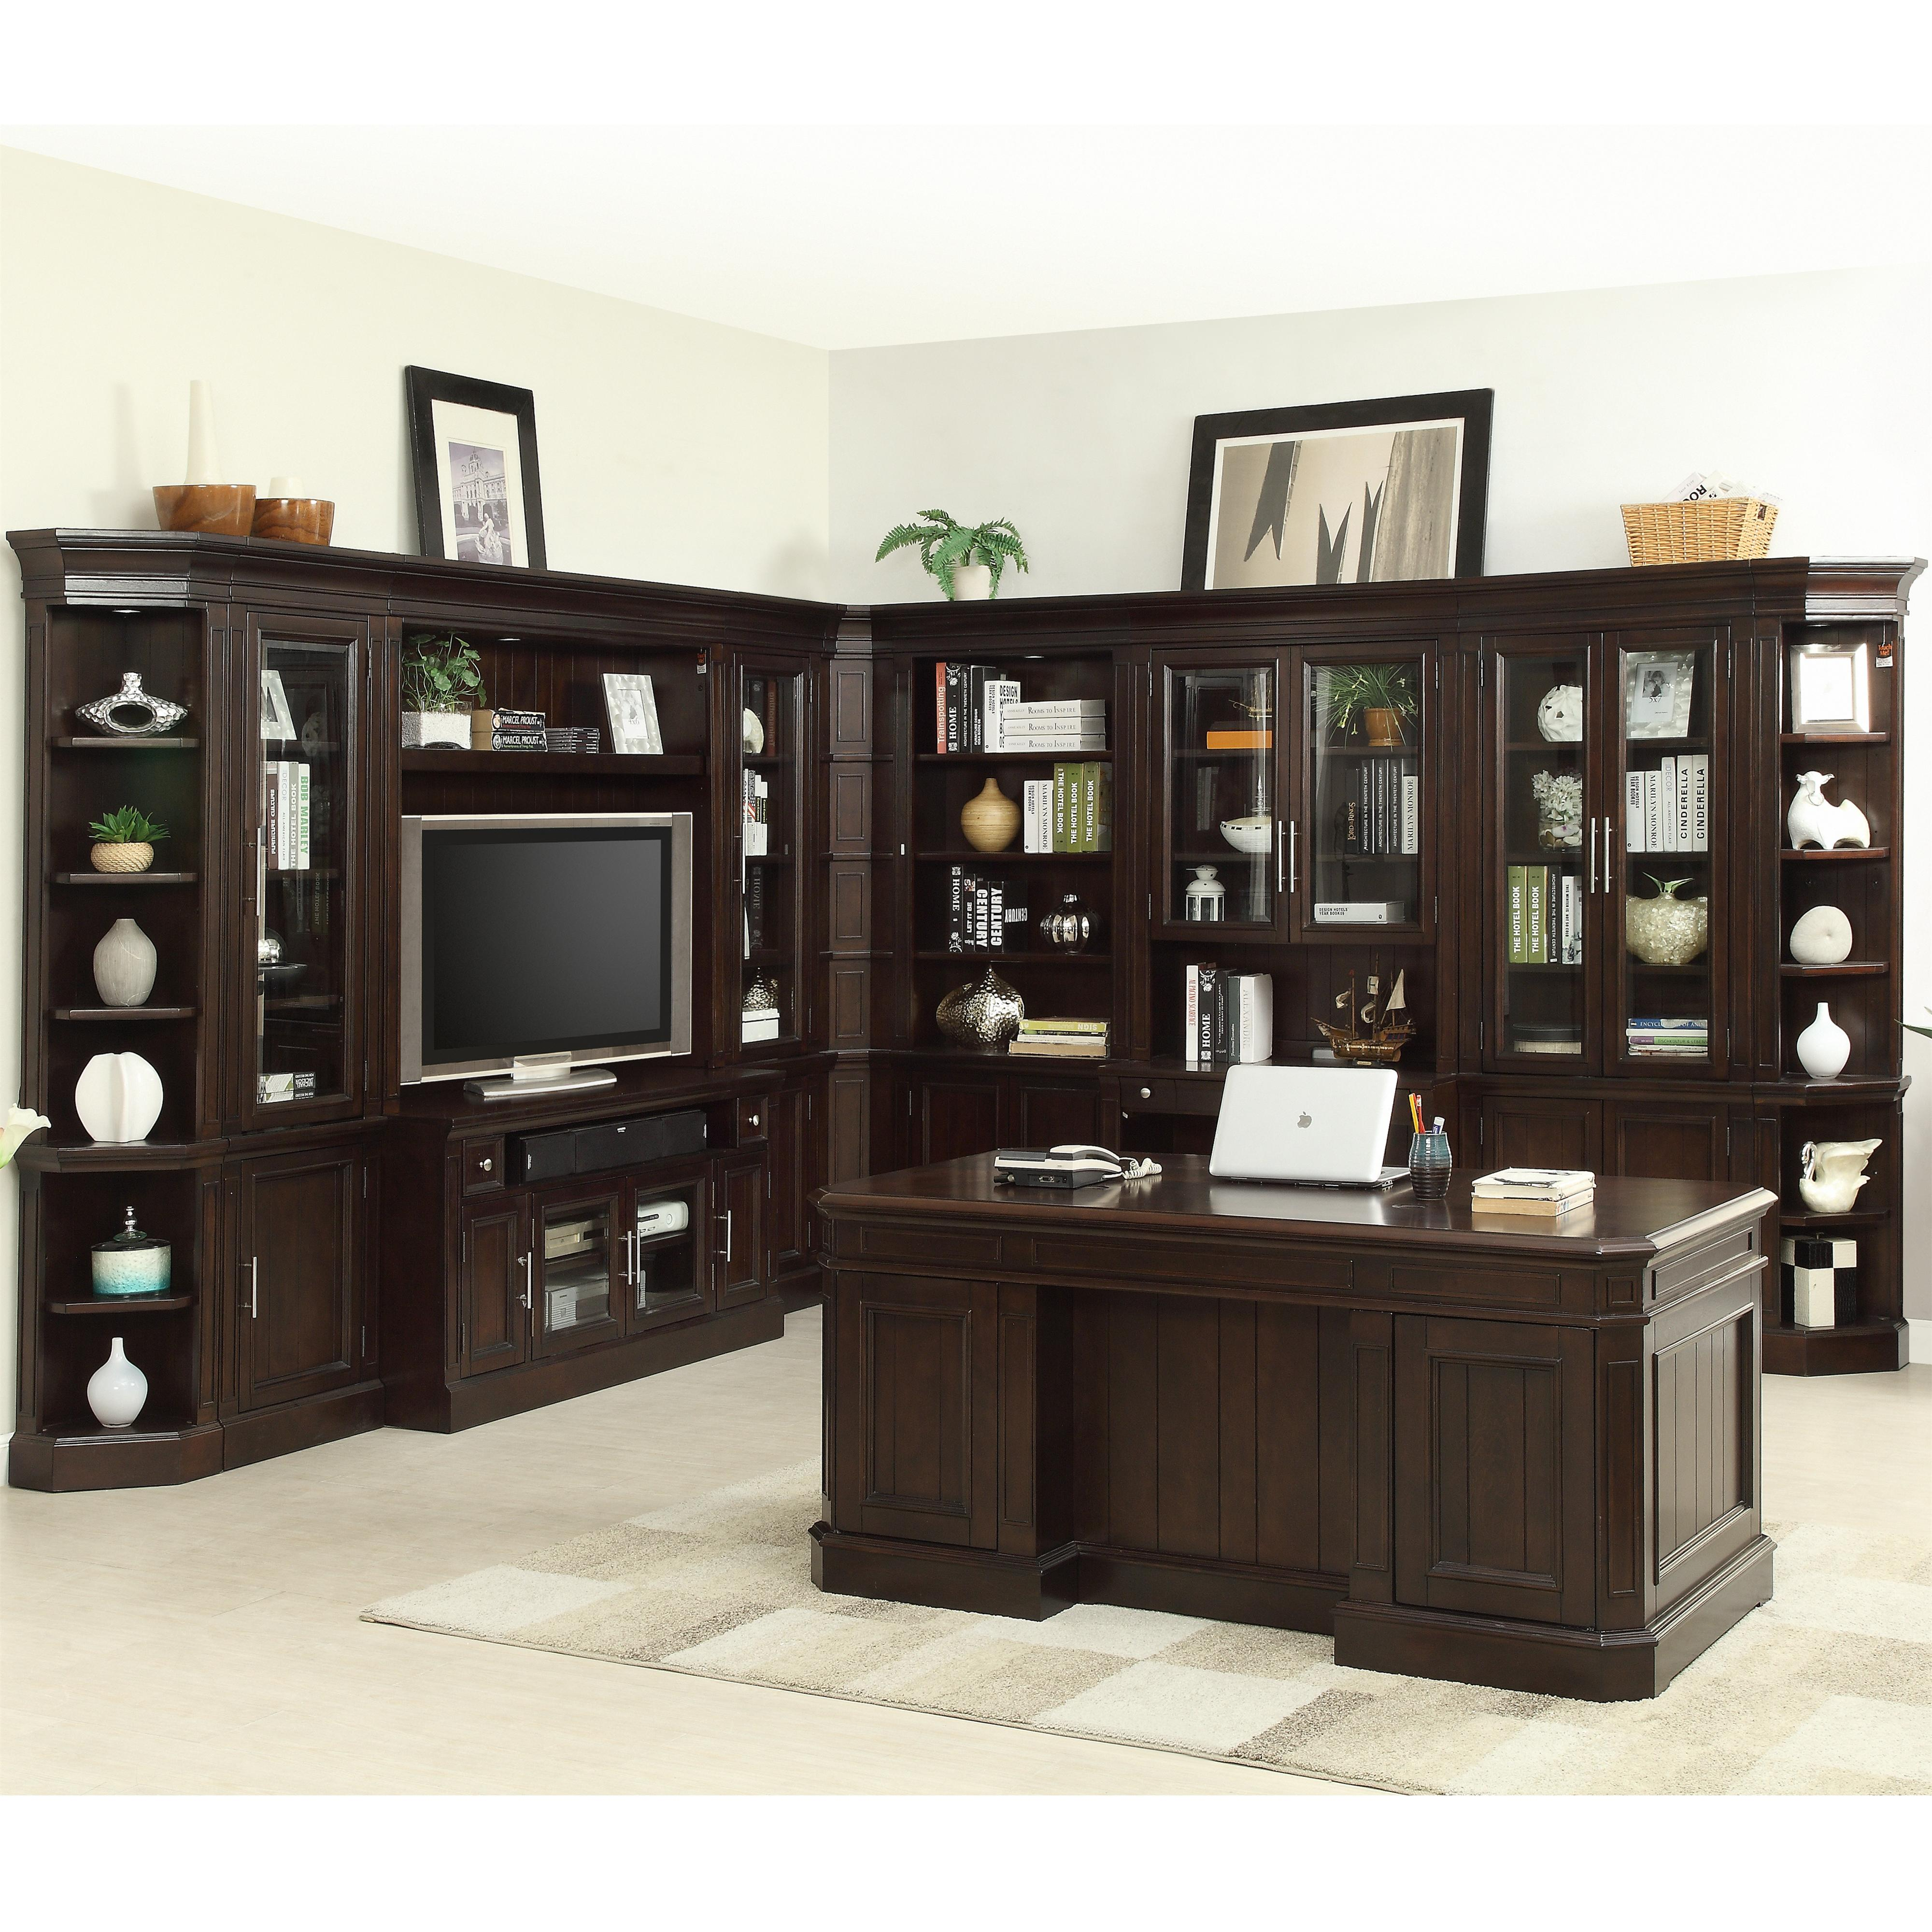 Parker House Stanford Wall Unit - Item Number: STA Wall Unit 3